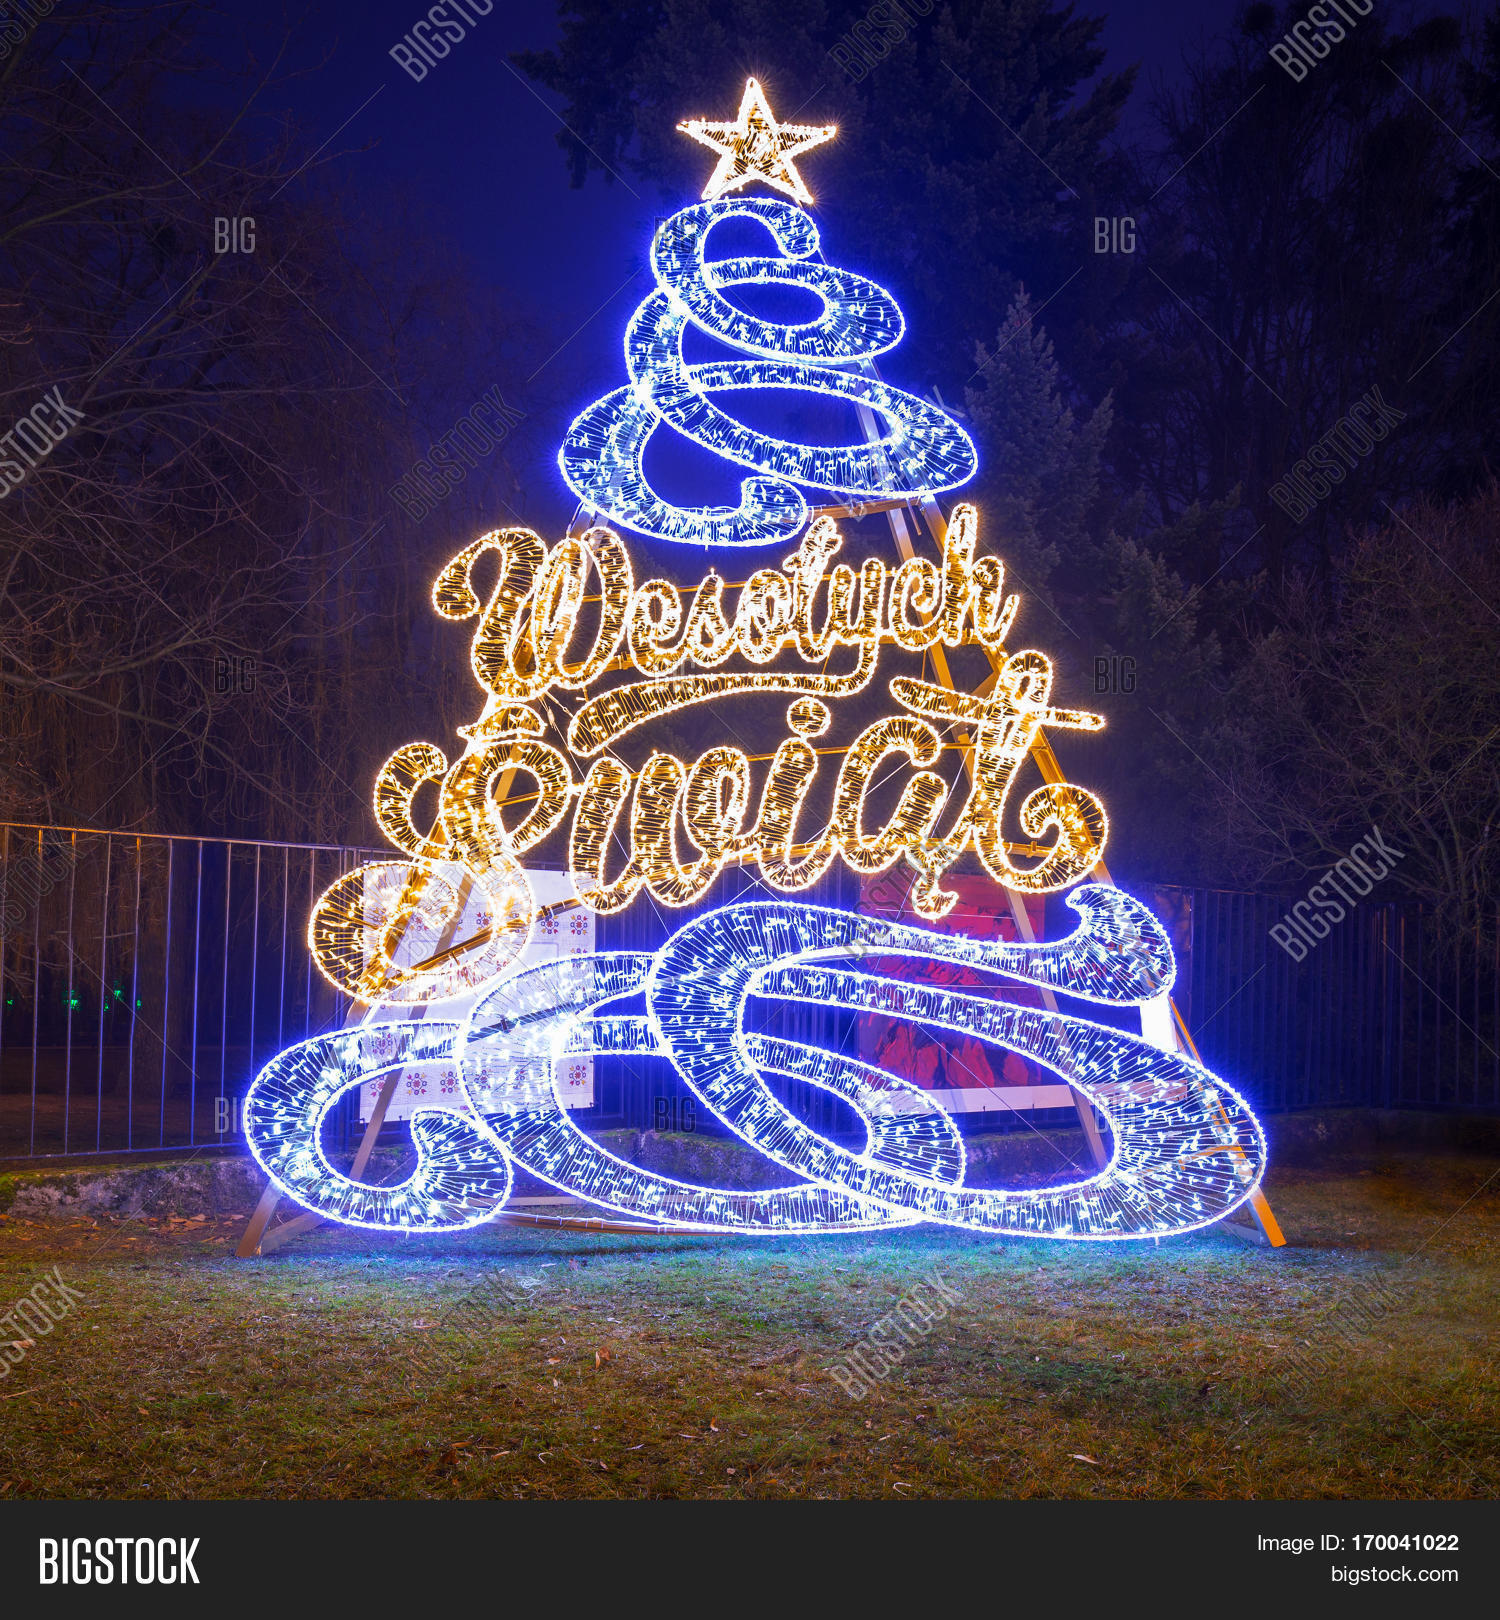 Merry Christmas In Polish.Gdansk Poland Image Photo Free Trial Bigstock